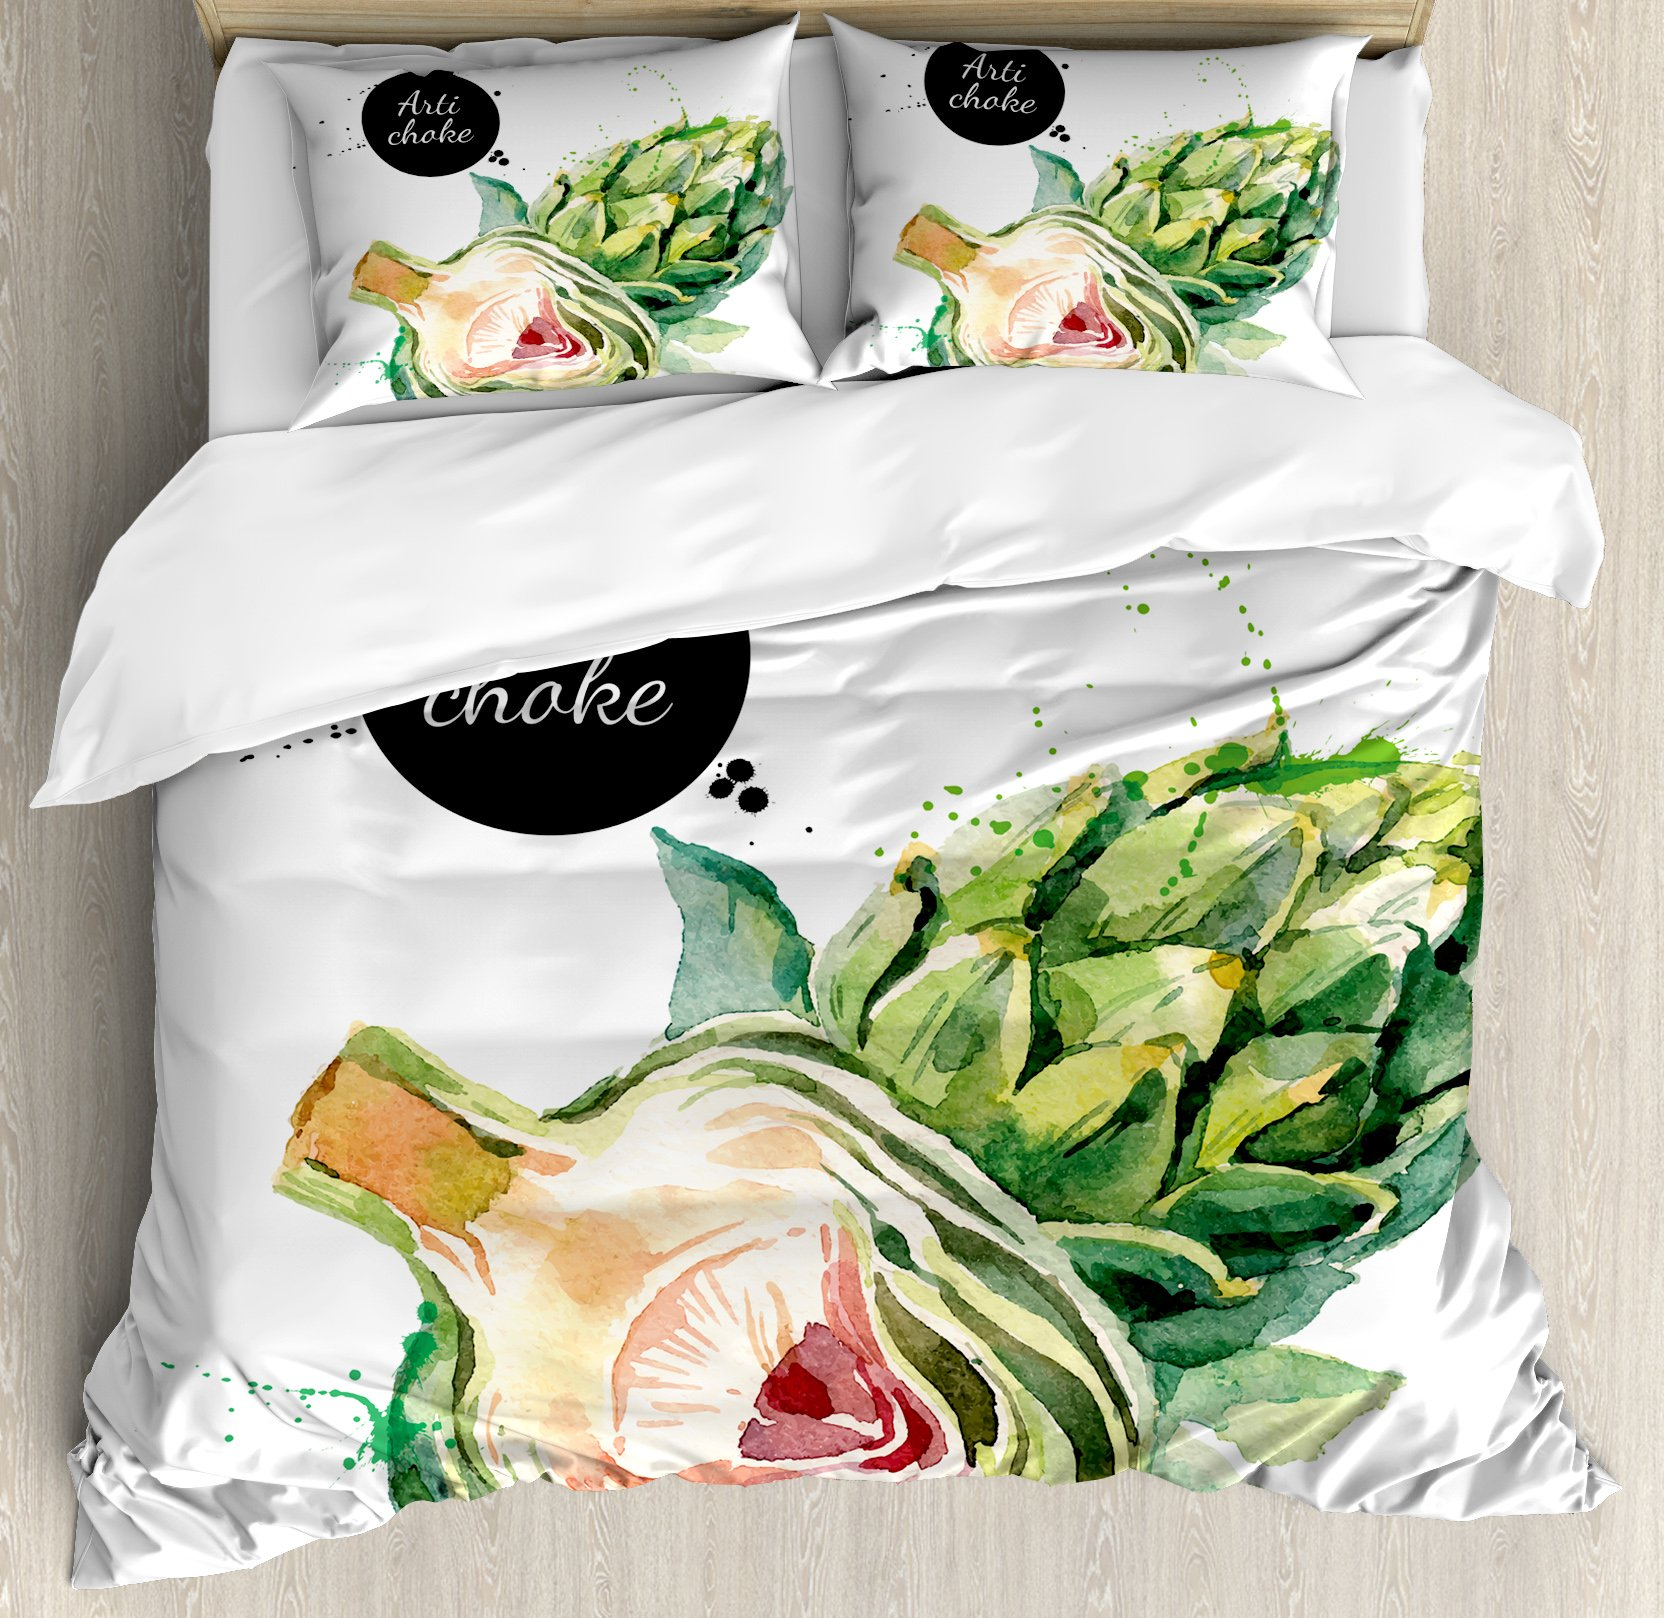 Artichoke King Size Duvet Cover Set by Ambesonne, Going Green Vegetable Food Eating Health Hand Drawn Watercolor, Decorative 3 Piece Bedding Set with 2 Pillow Shams, Fern Green and Dried Rose by Ambesonne (Image #1)